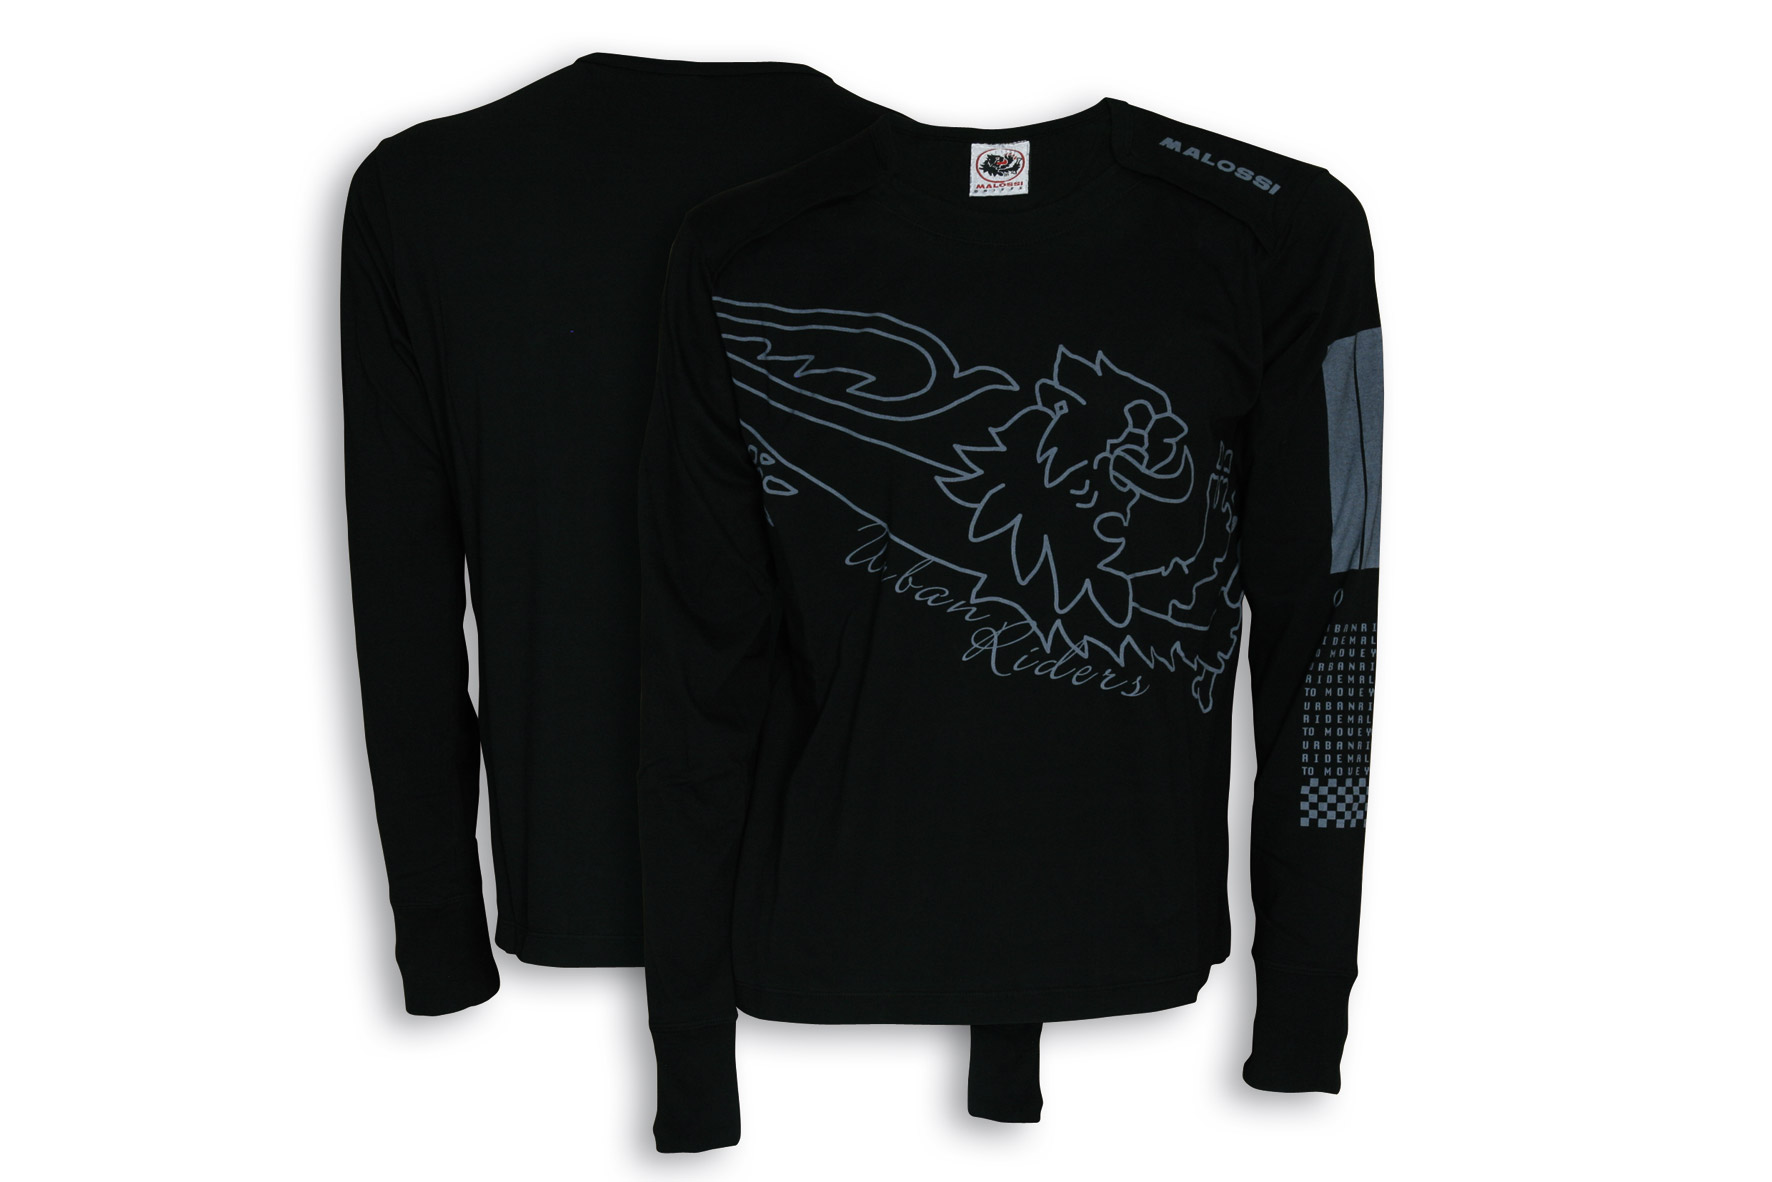 BLACK T-SHIRT MALOSSI griffe (LONG sleeve) - BAR CODE ( M )